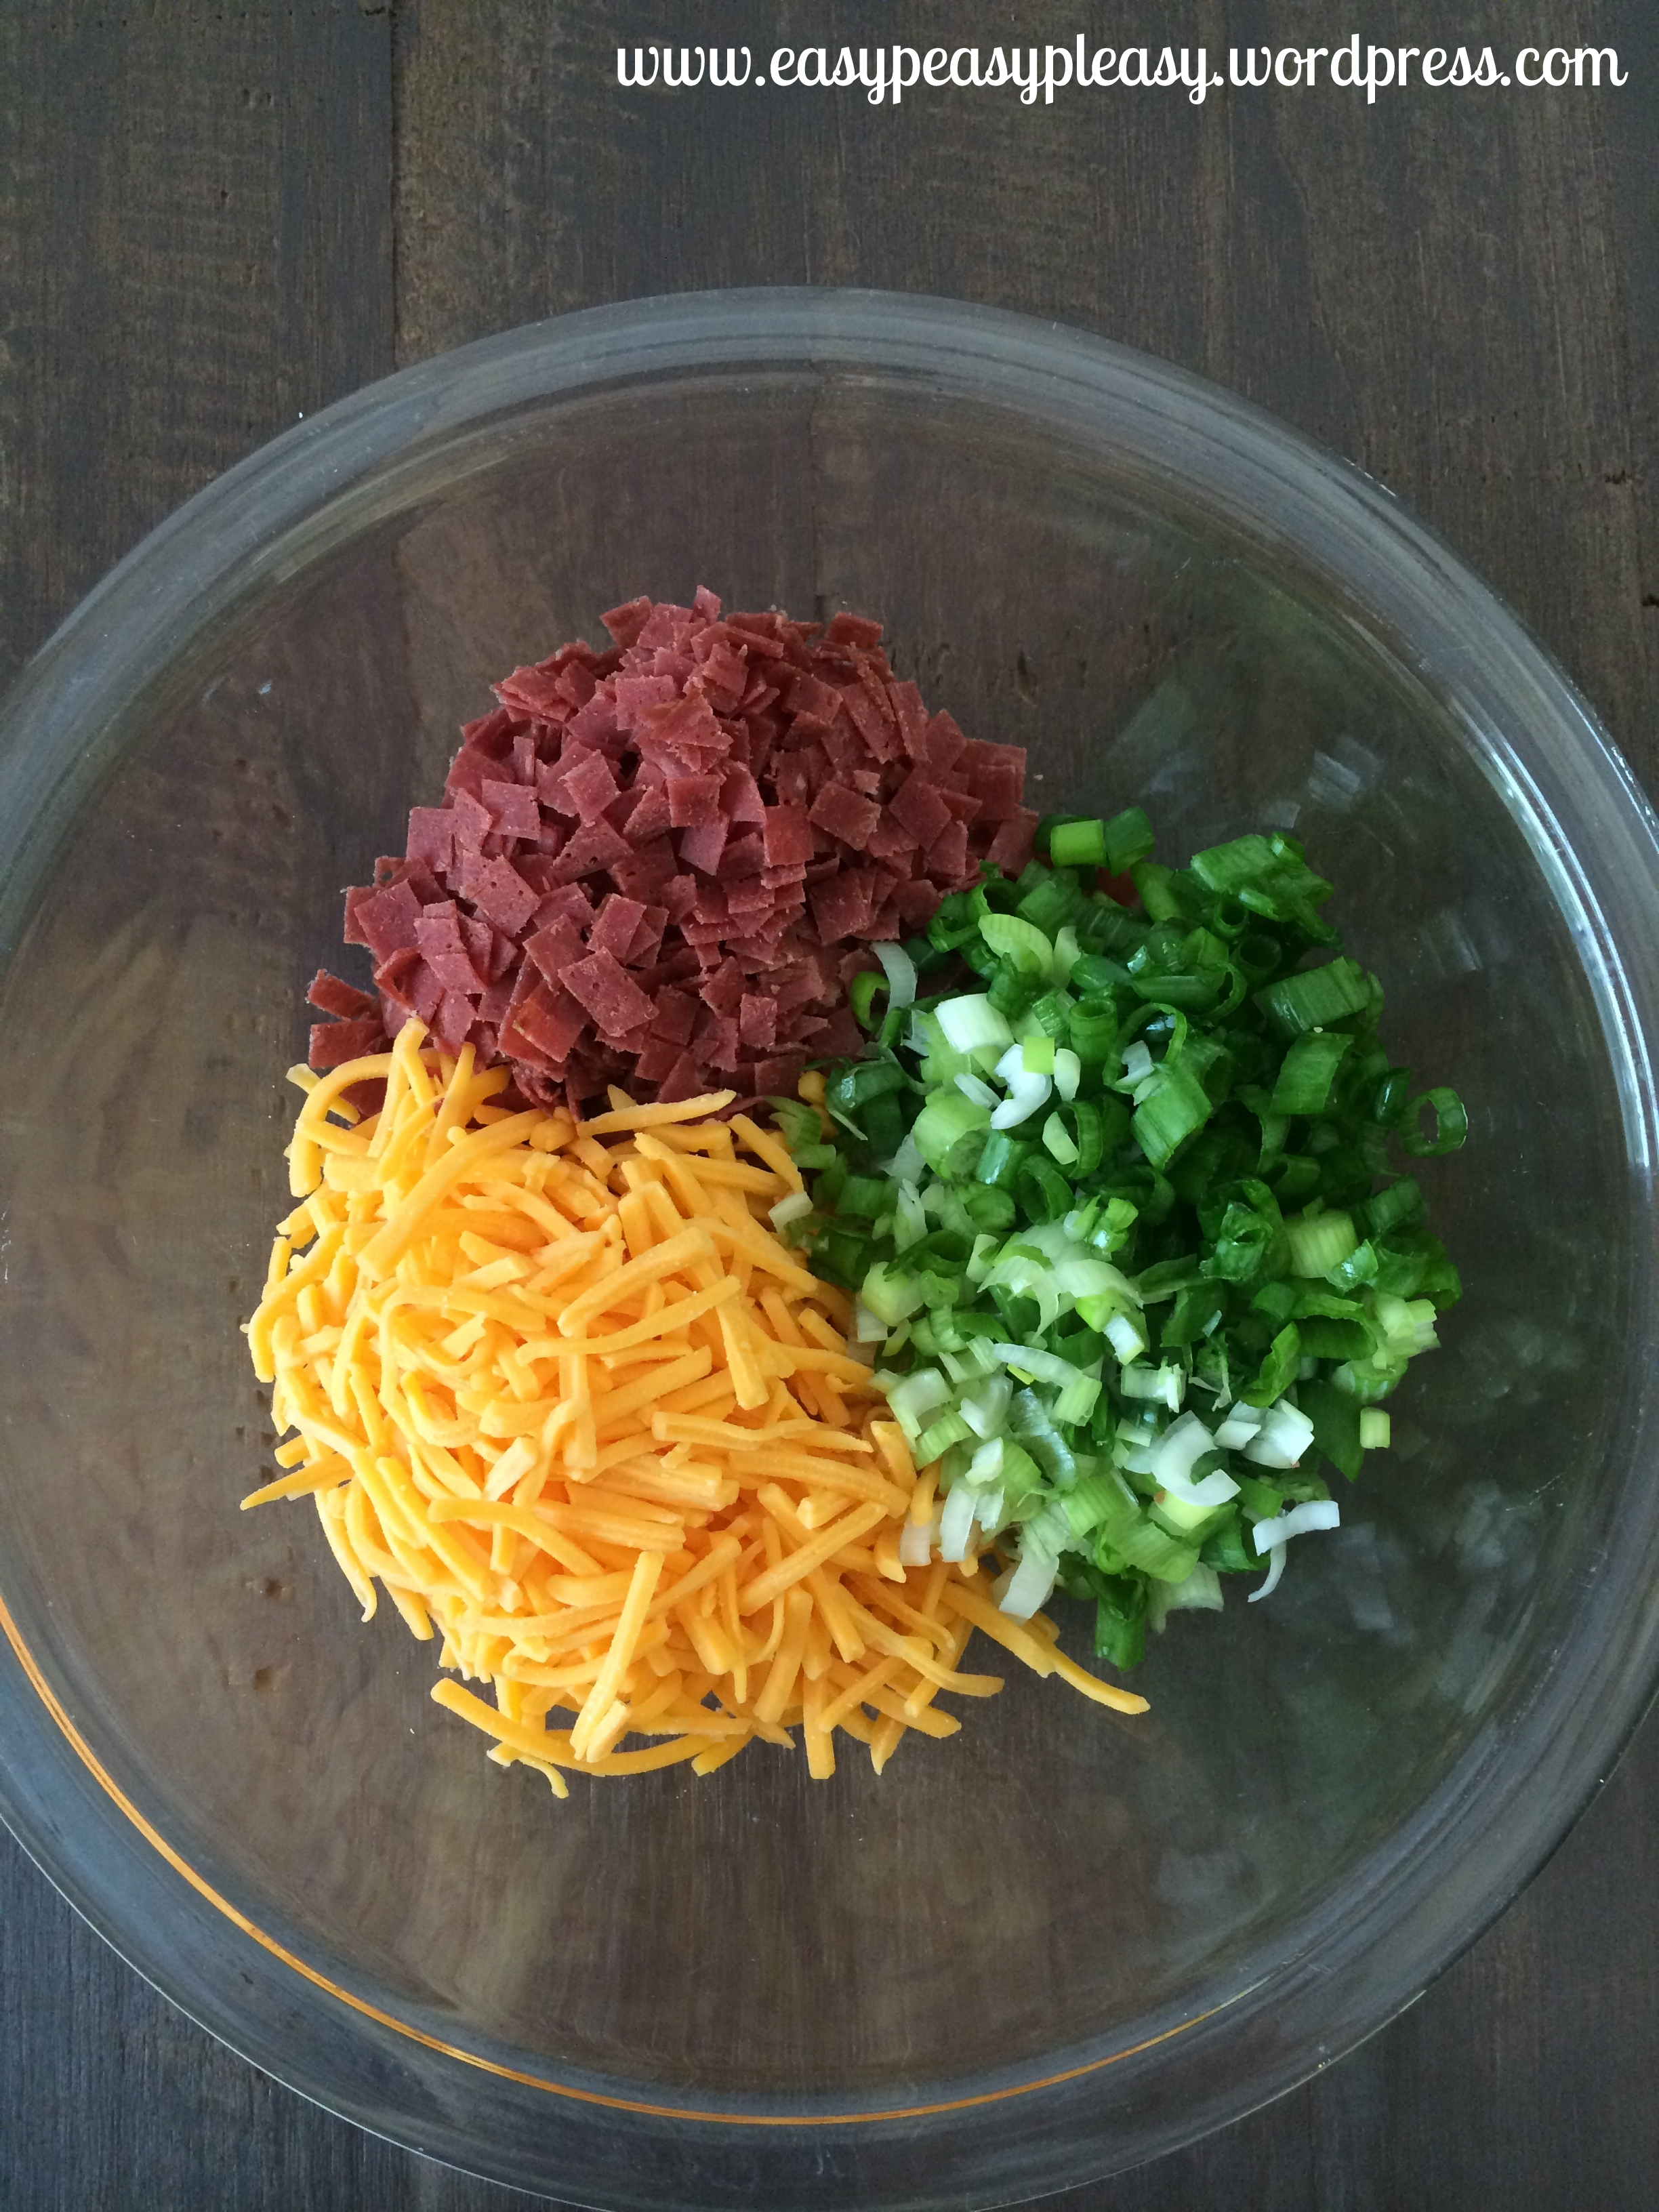 Green Onions, Dried Beef, Shredded Cheddar, and cream cheese is all you need to make the best cheese ball ever